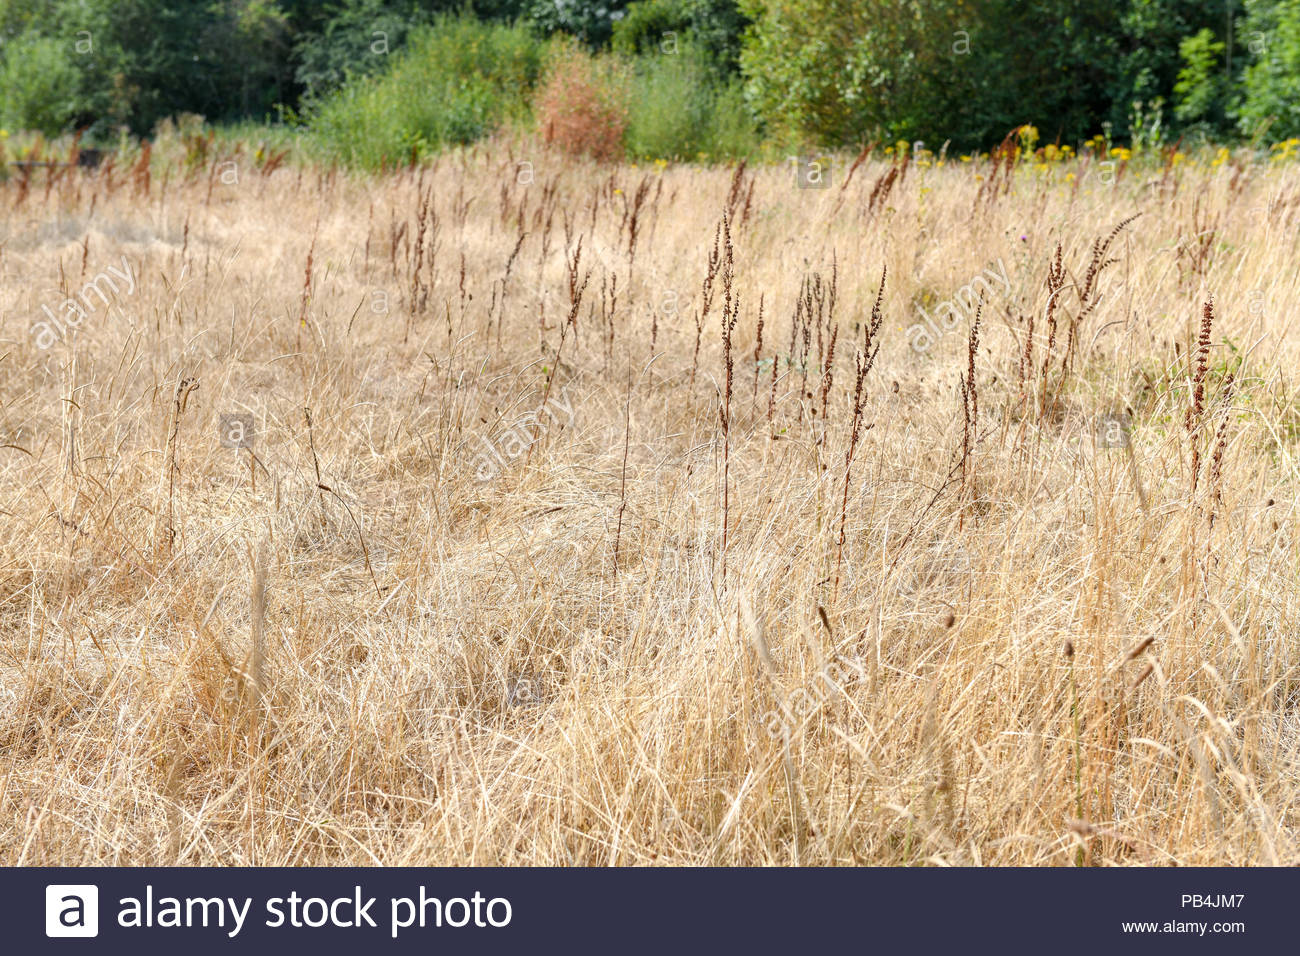 Dried up wildlife ponds surrounded by grassland in Shropshire UK - Stock Image